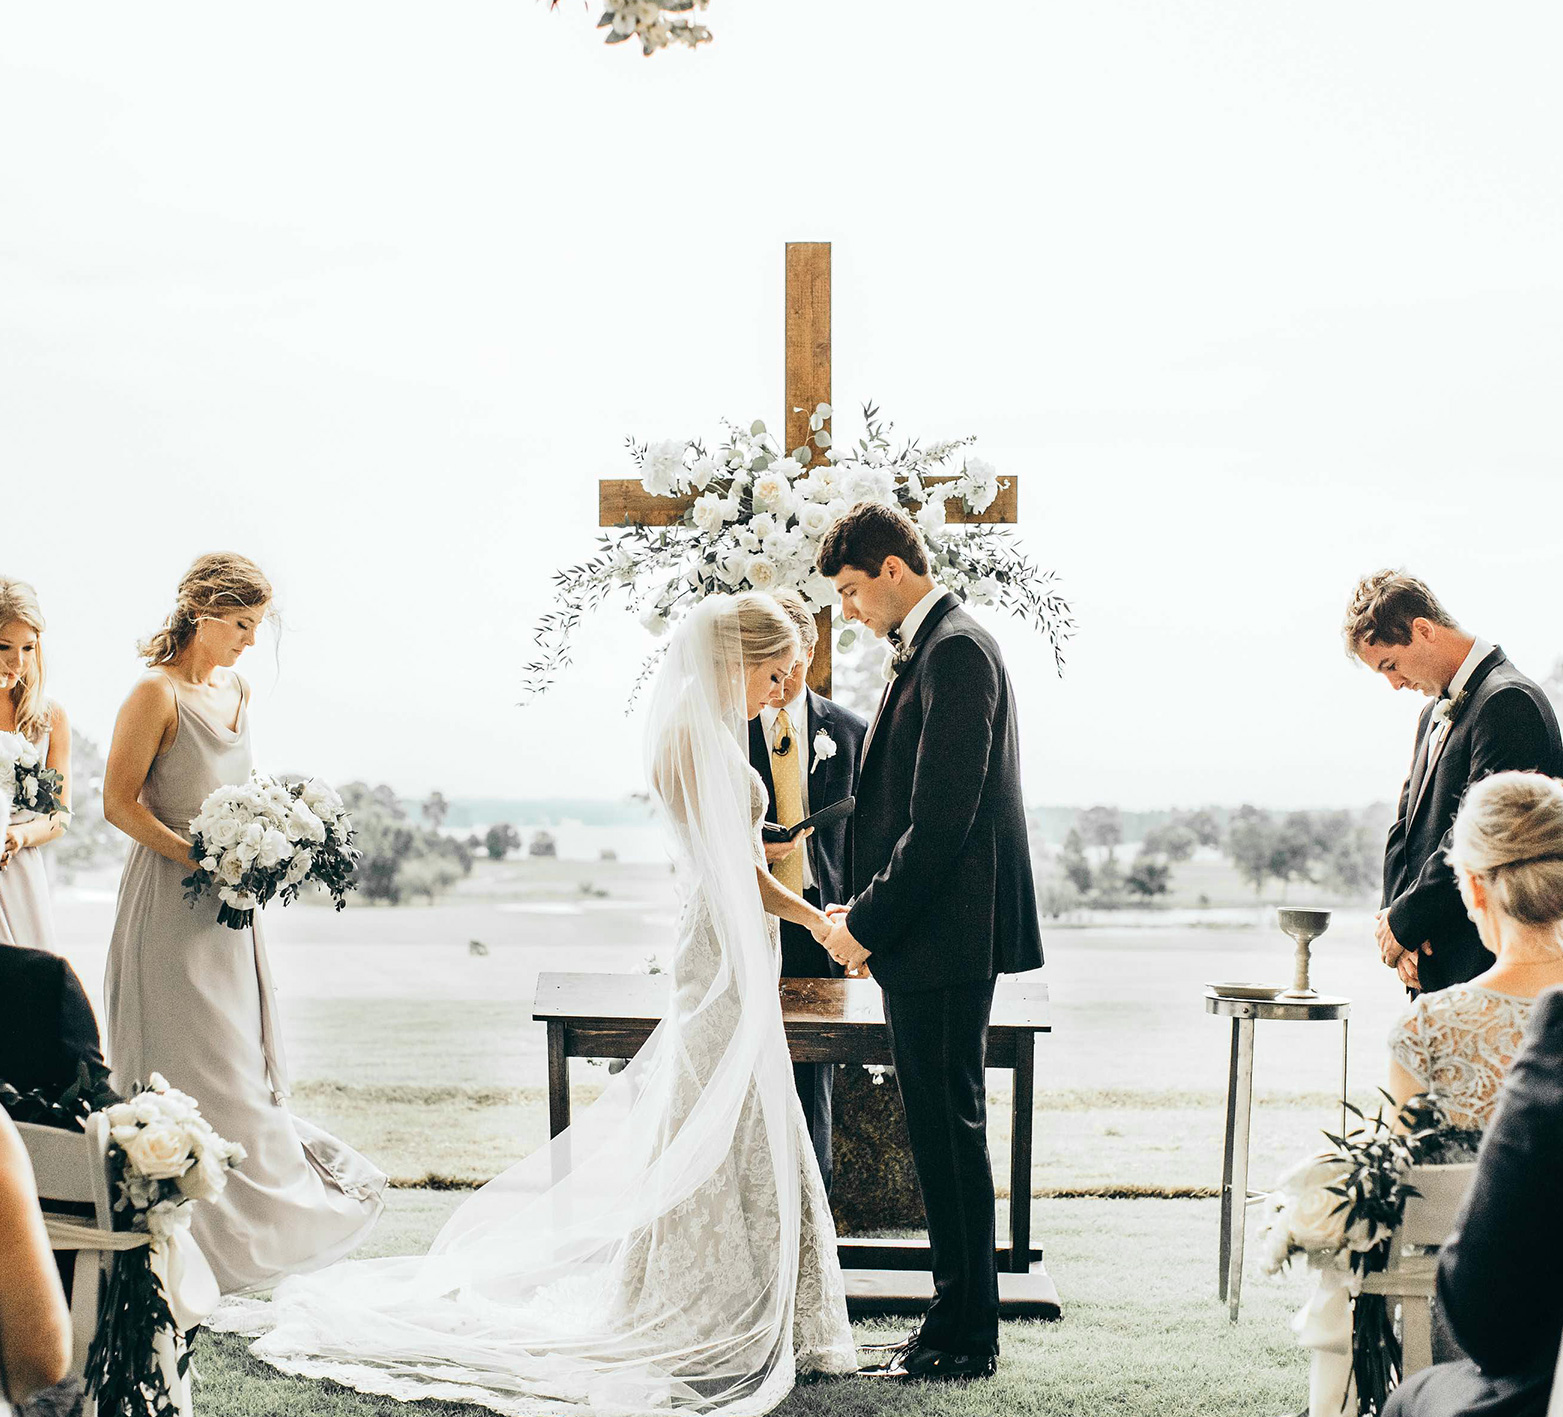 wedding-planning-process-from-experts.jpg